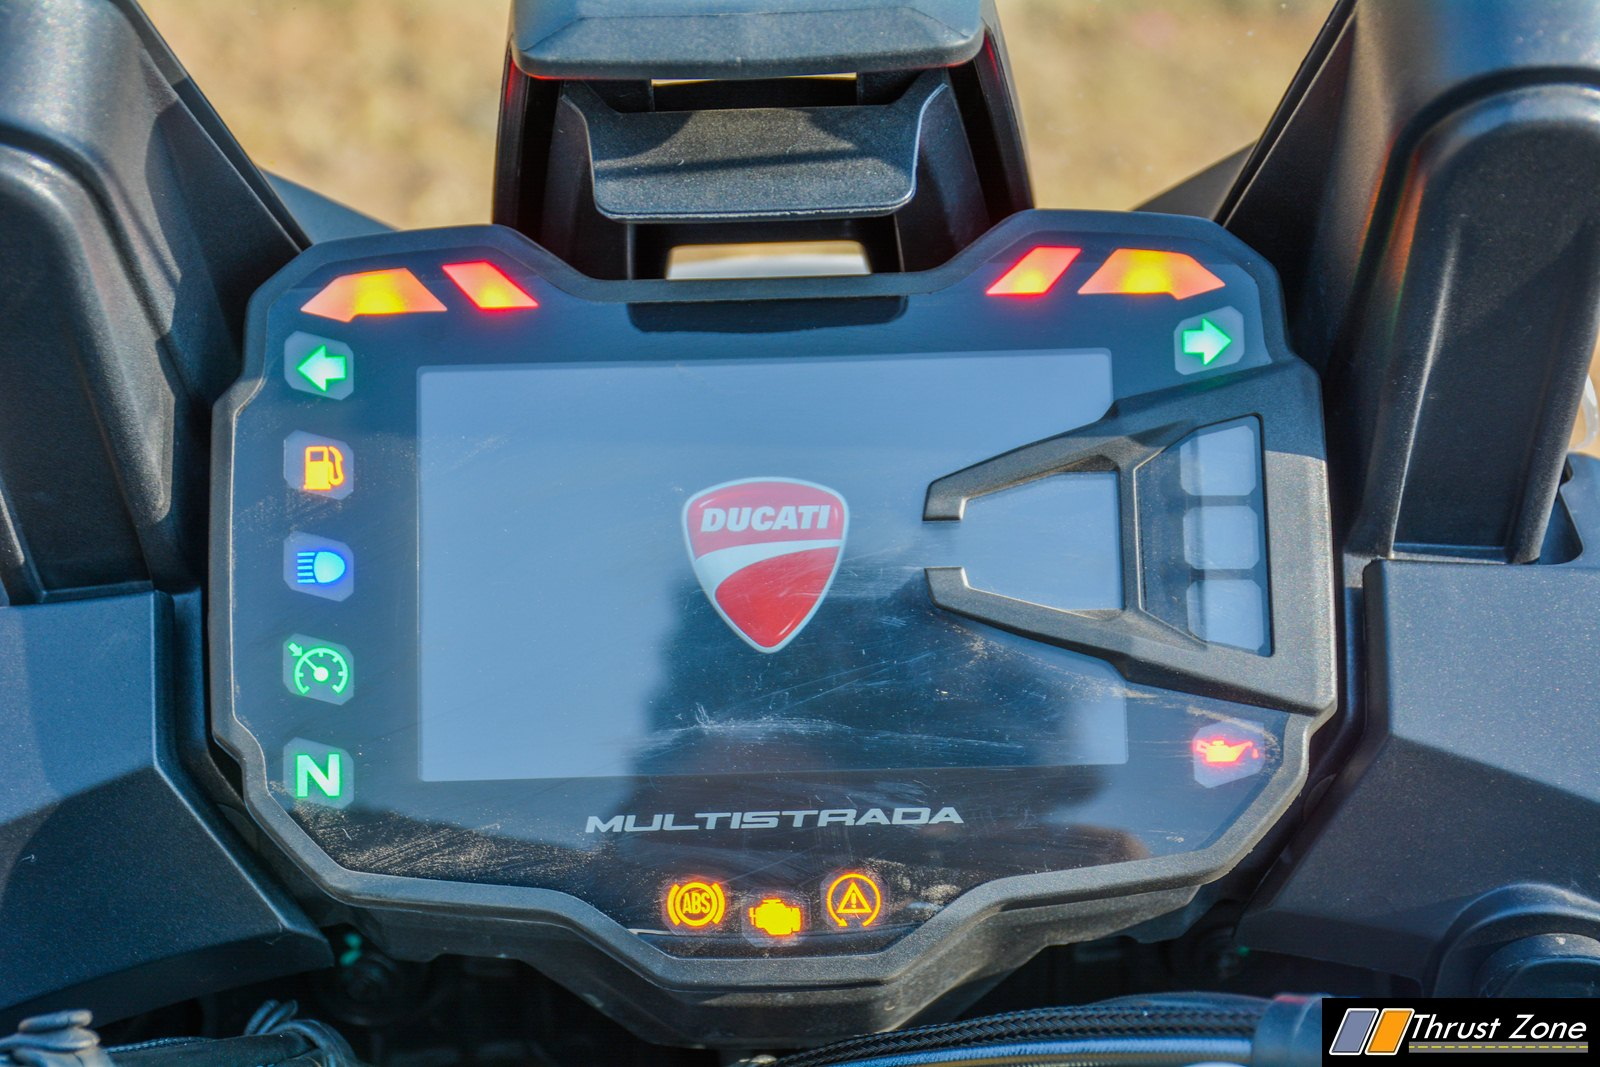 https://www.thrustzone.com/wp-content/uploads/2018/11/2018-Ducati-Multistrada-1260-India-Review-16.jpg